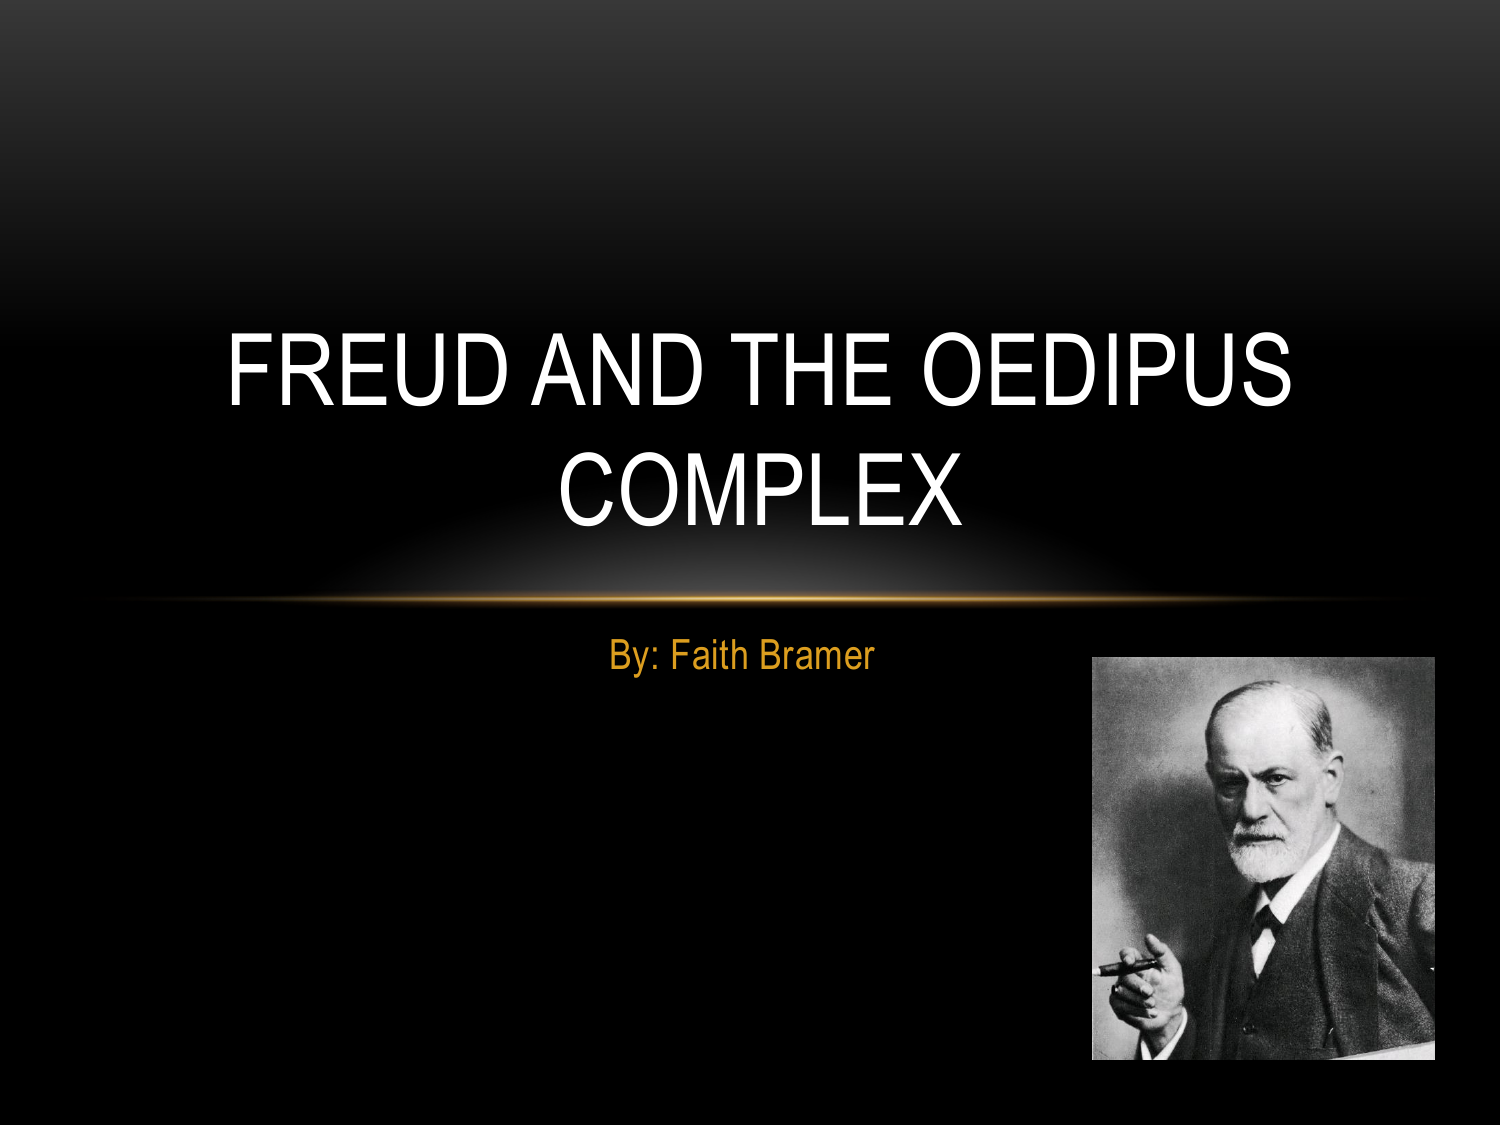 Oedipus and electra complexes occur during which psychosexual stage